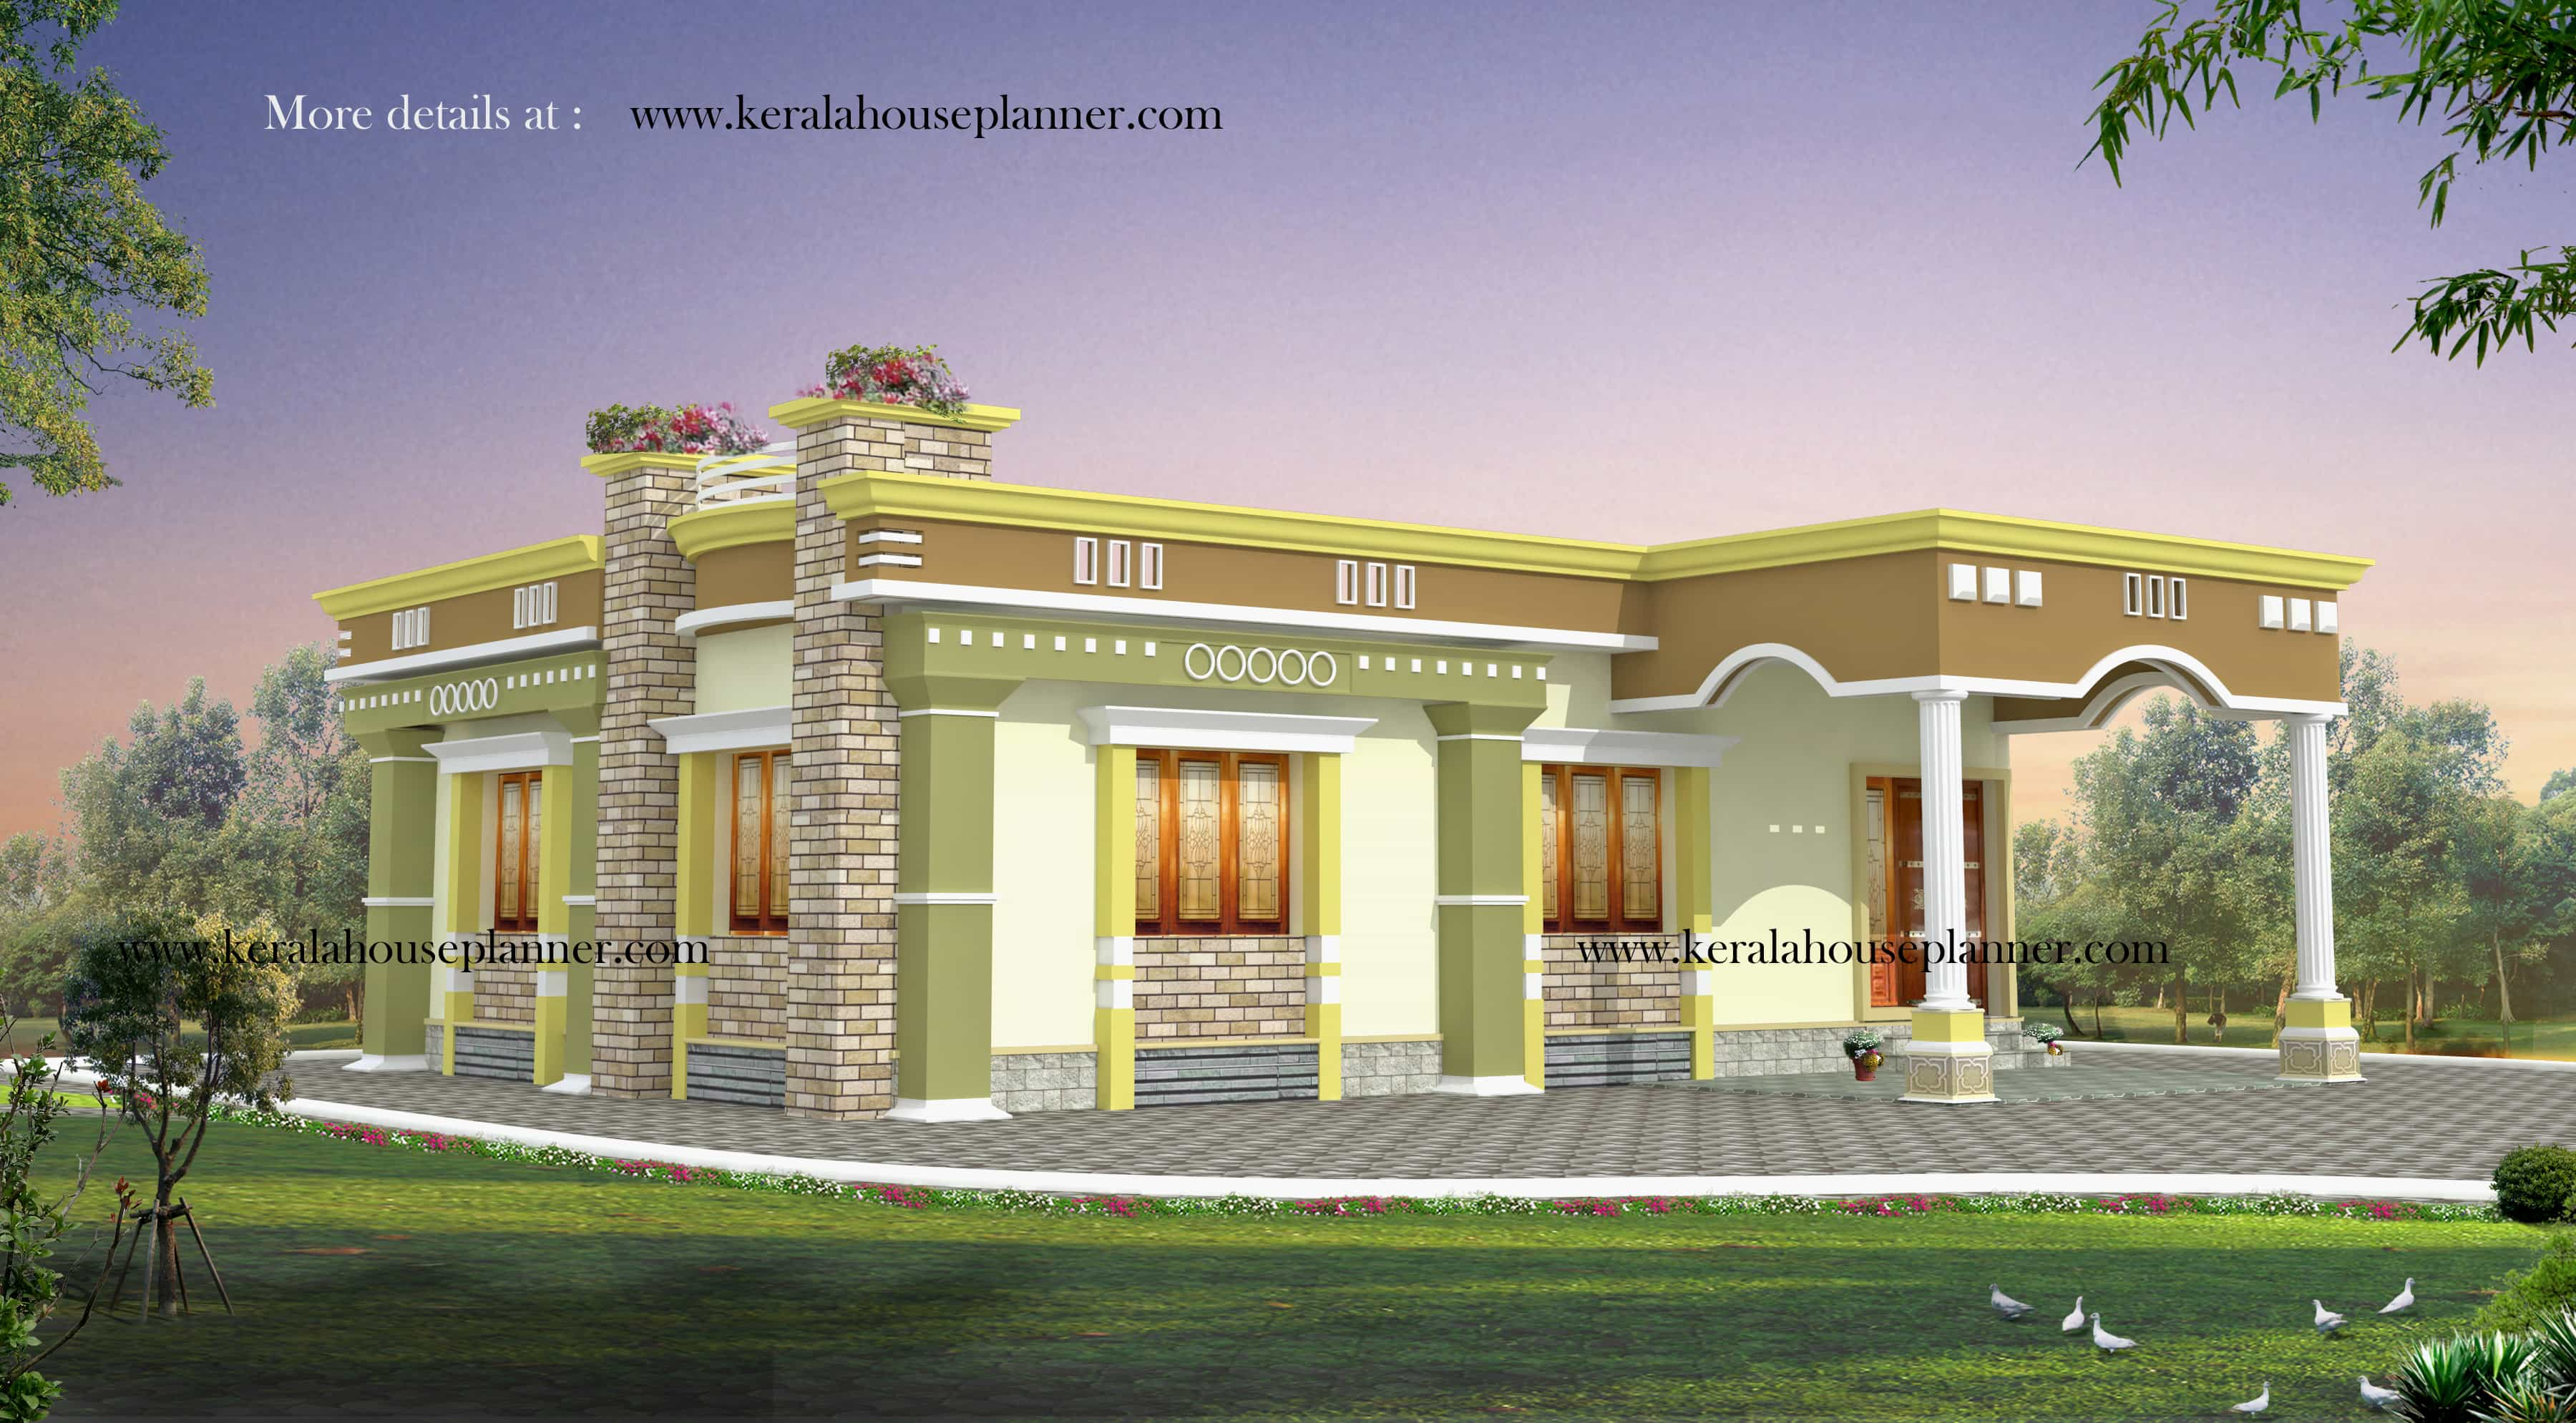 Kerala house plans 1200 sq ft with photos khp for Single house design